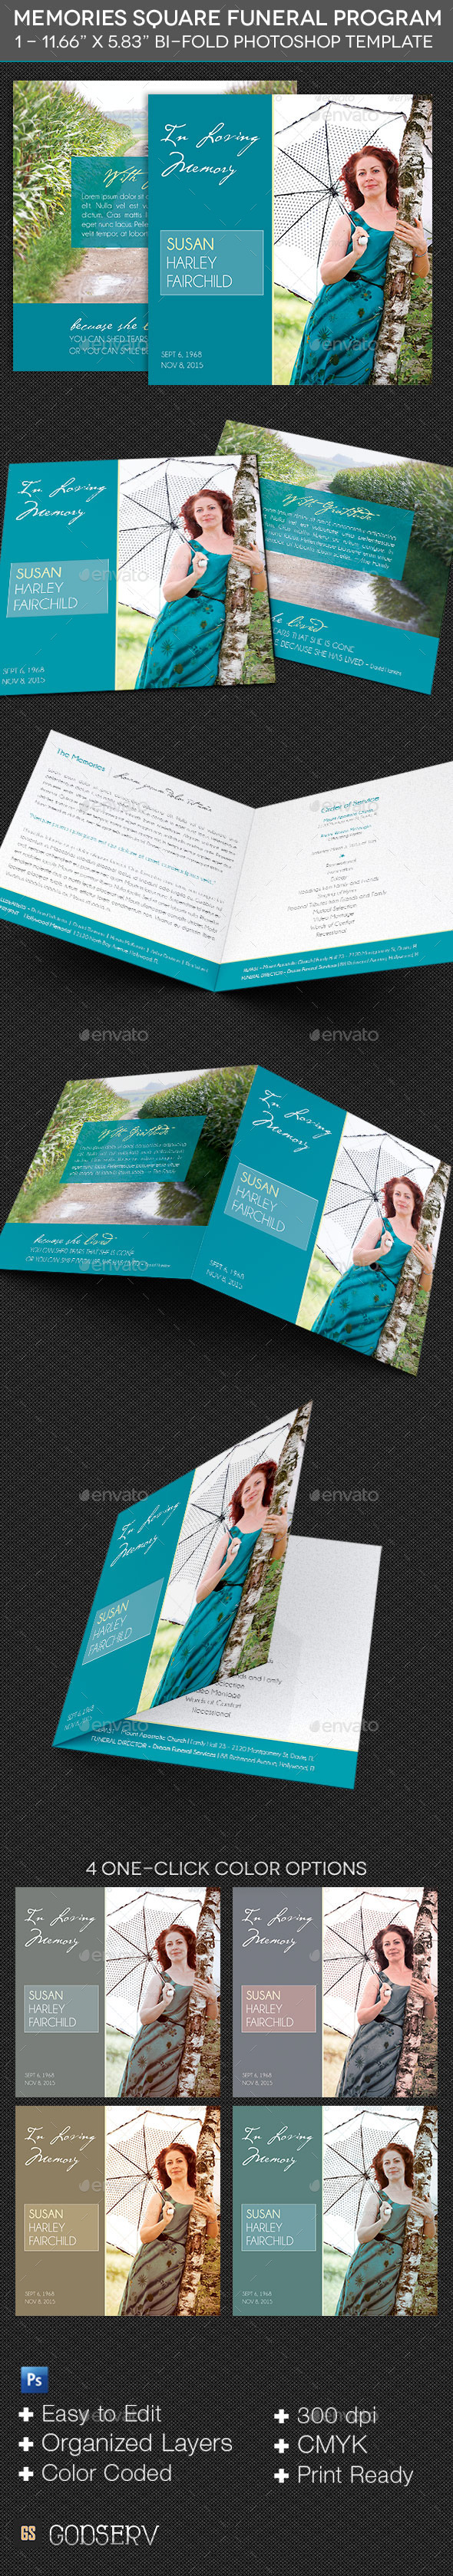 GraphicRiver Memories Square Funeral Program Template 9806826